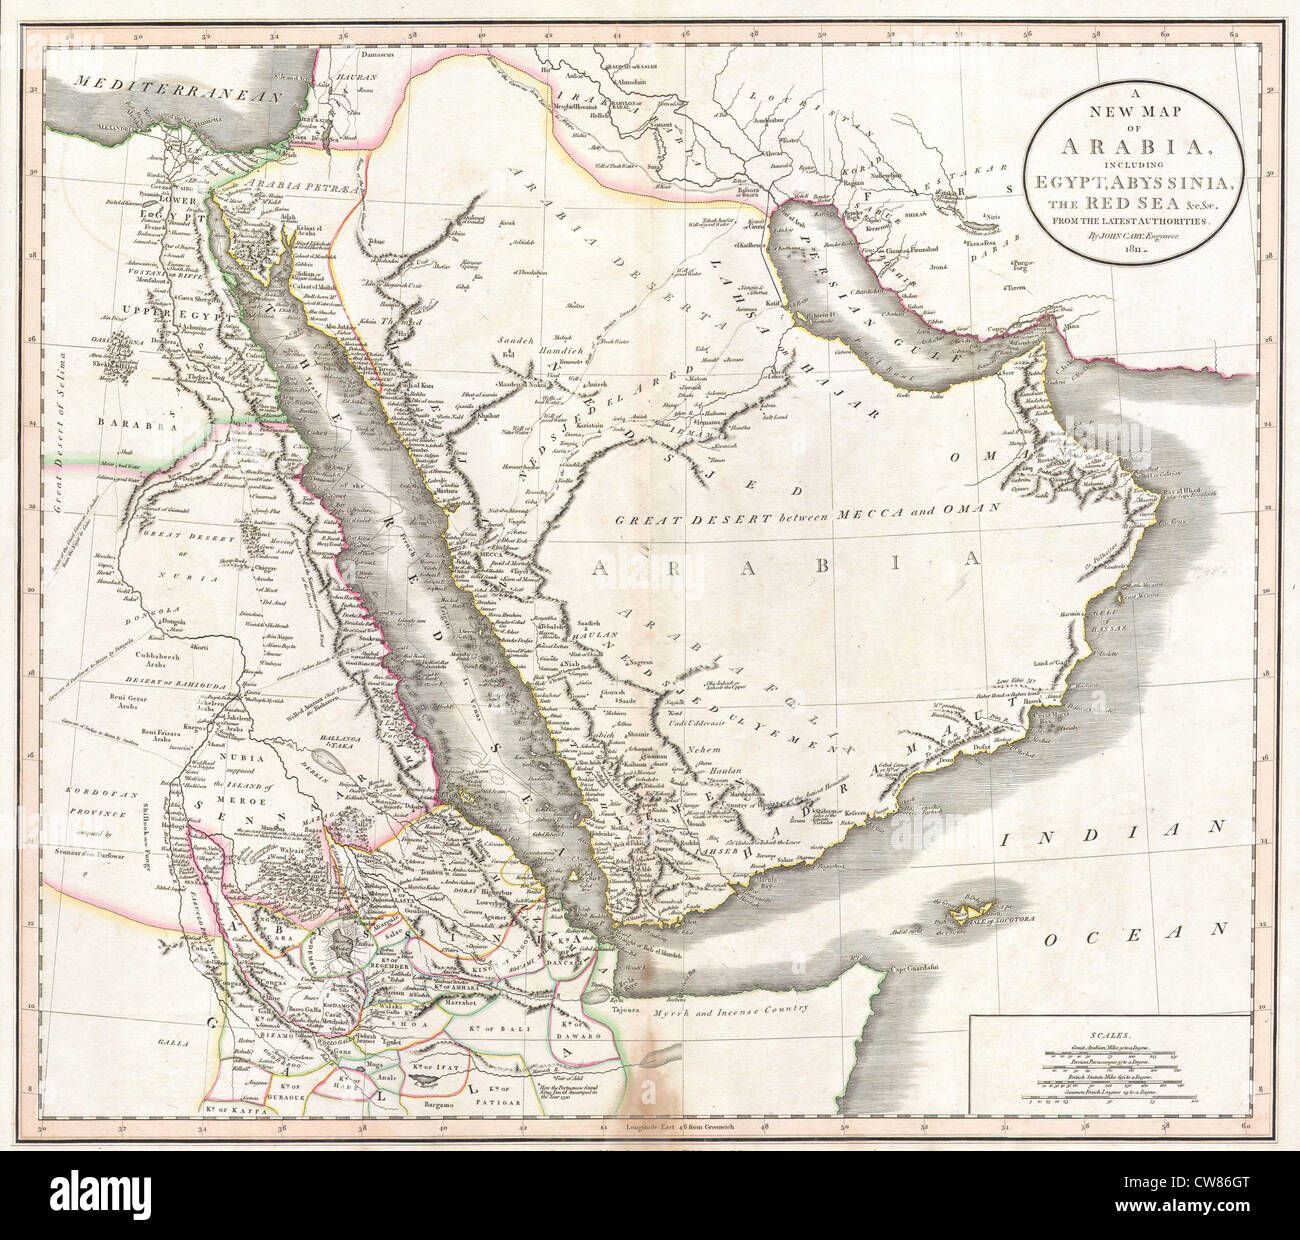 1811 Cary Map Of Arabia Egypt Abyssinia Photo Royalty – Map of Arabia